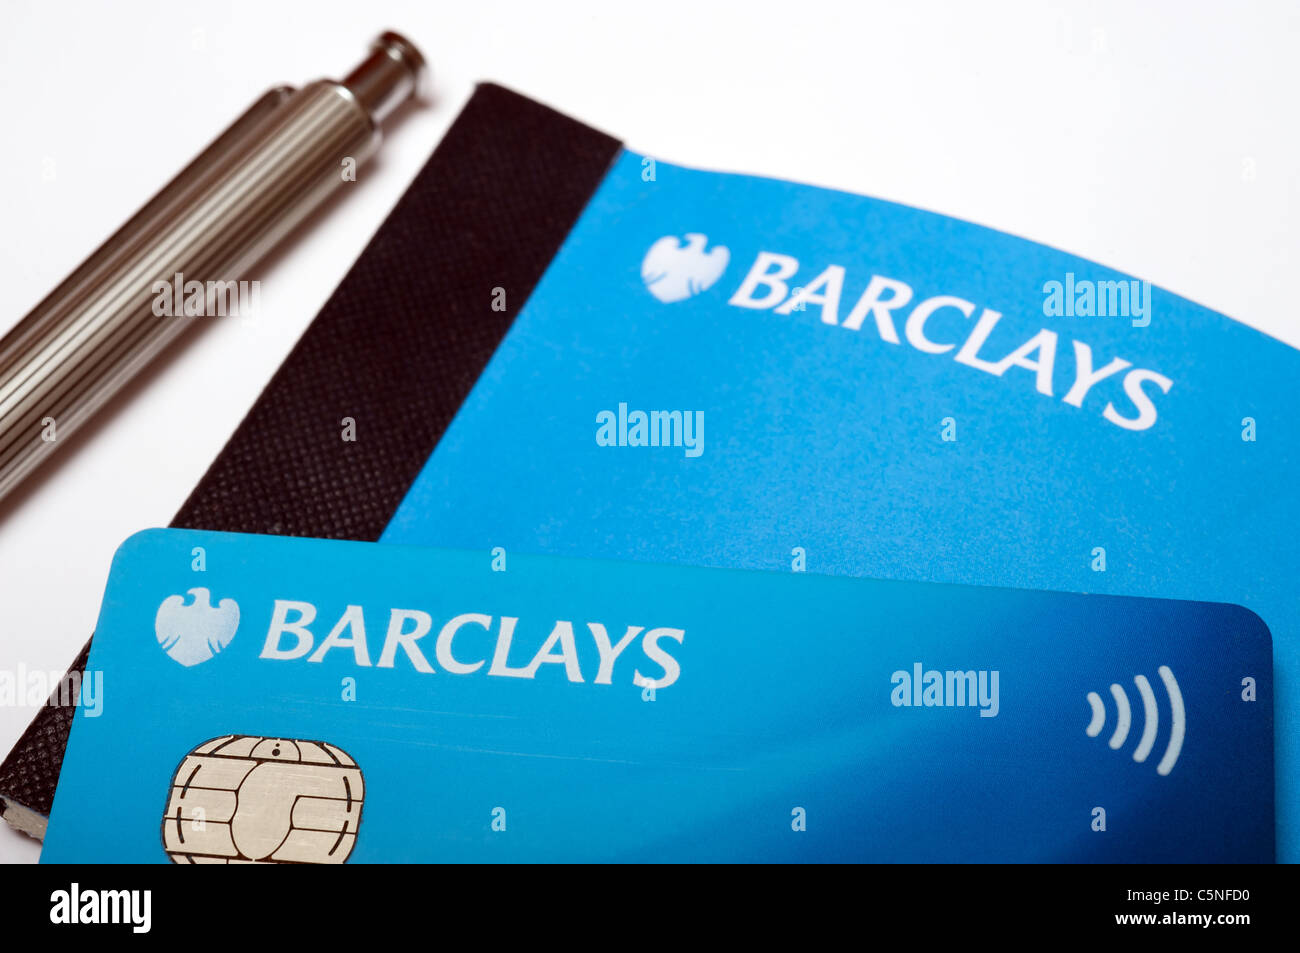 Barclays debit card and cheque book Stock Photo: 37967132 - Alamy